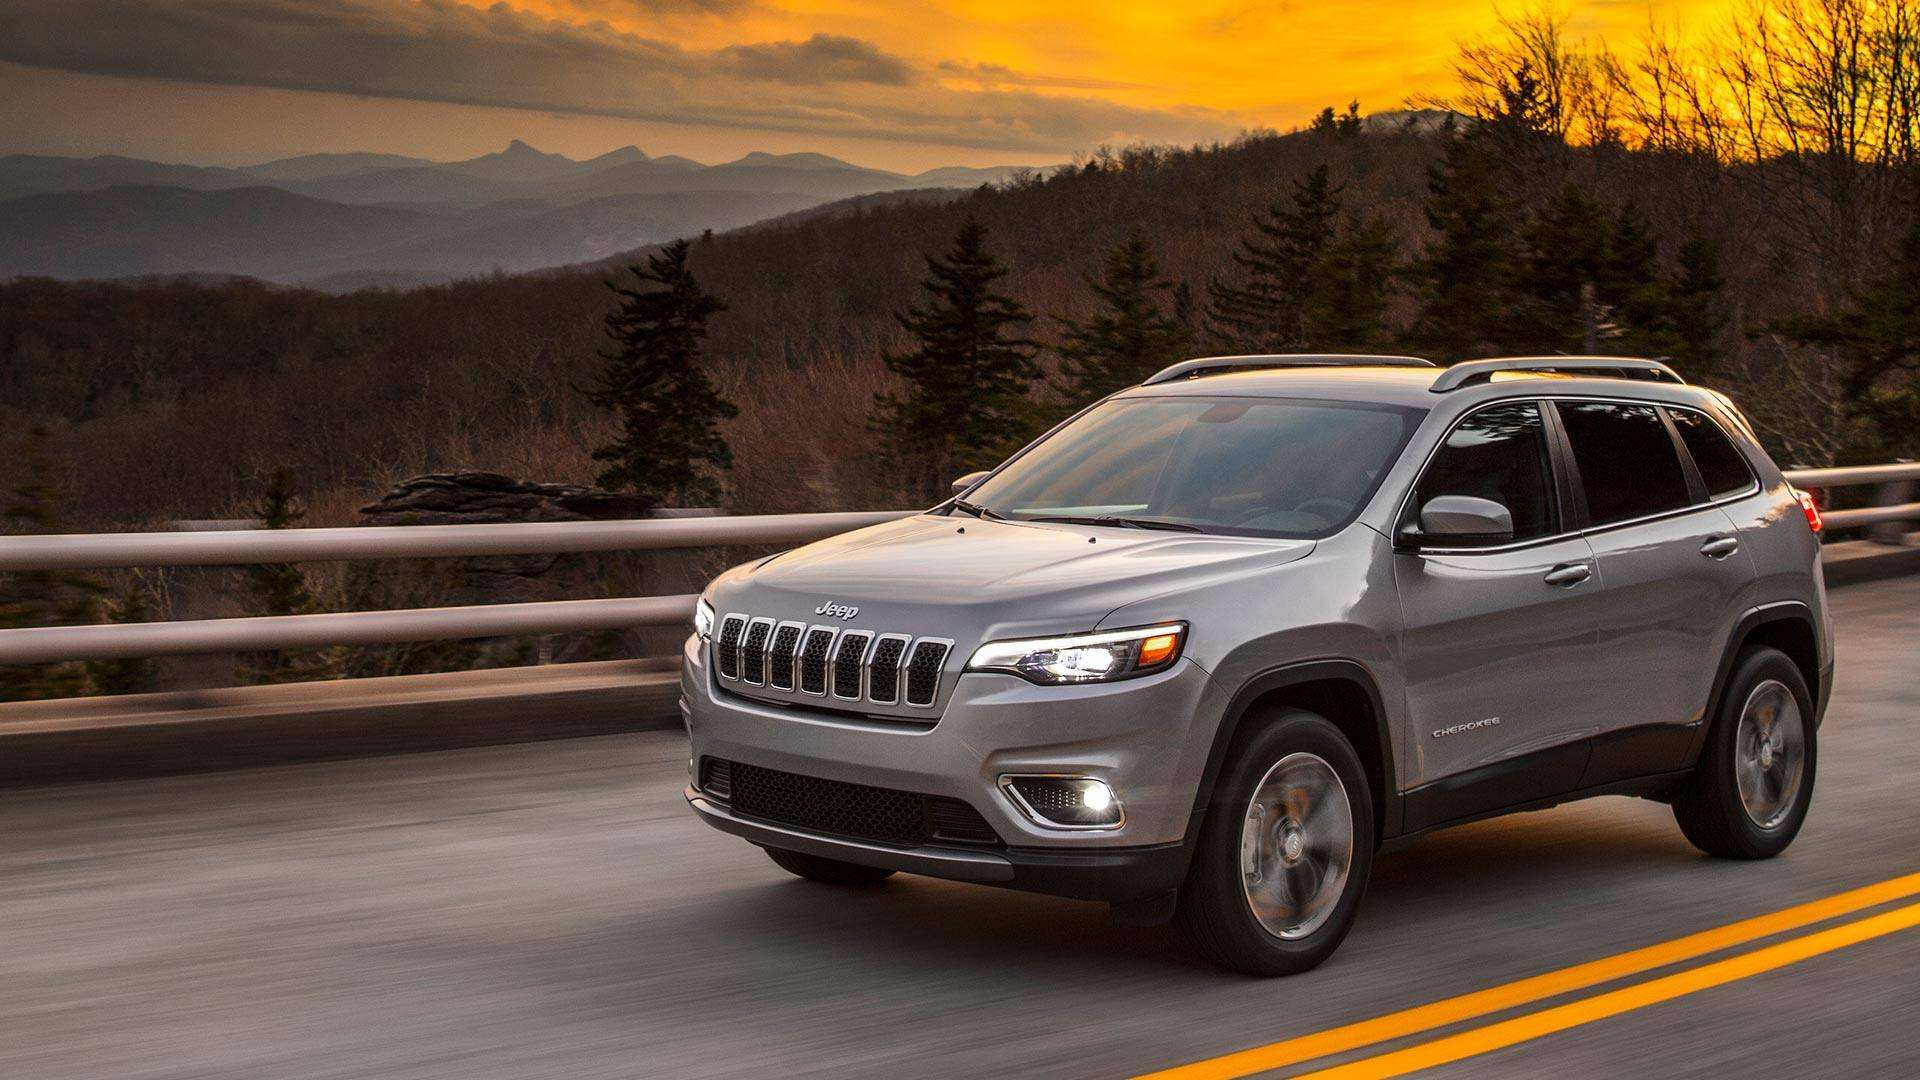 11 Best Jeep High Altitude 2019 Concept Rumors